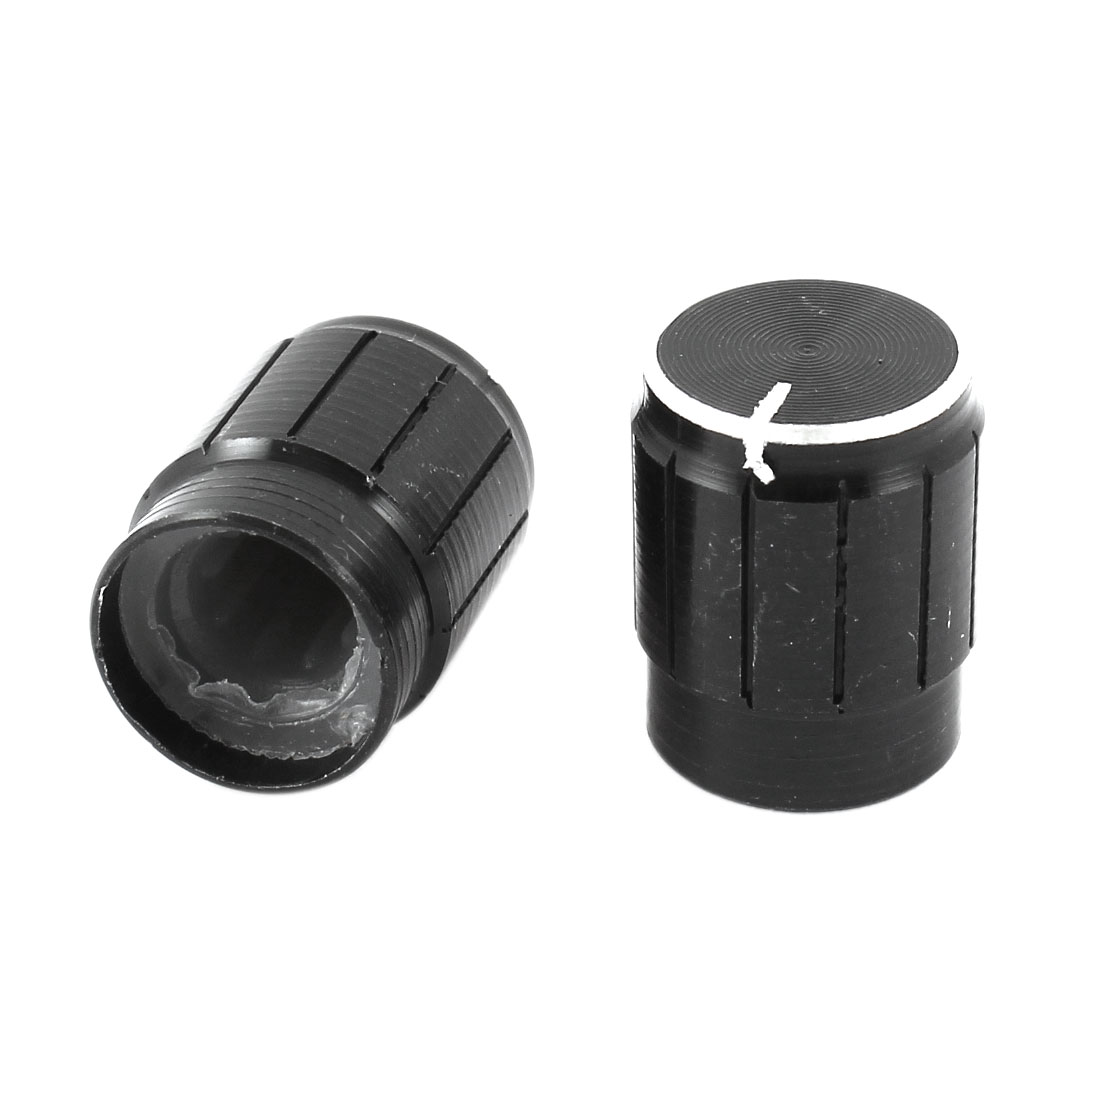 2 Pcs 13x17mm Volume Control Aluminum Potentiometer Knobs Caps Black